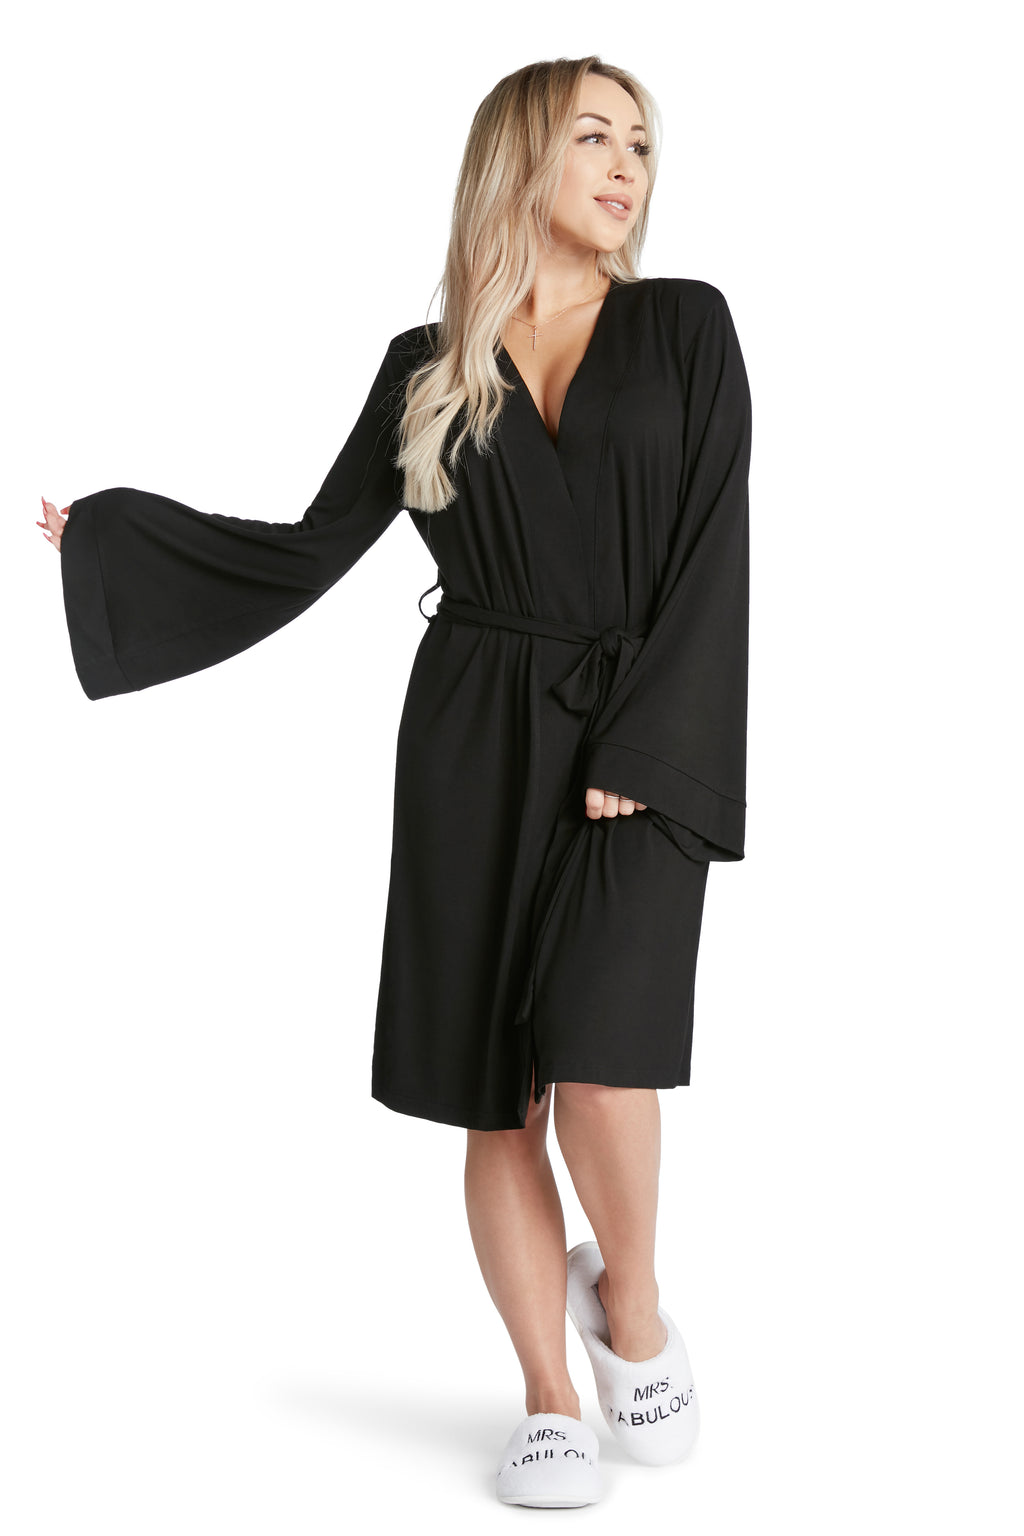 LIGHTWEIGHT ROBE -Dress Like Coco -Black